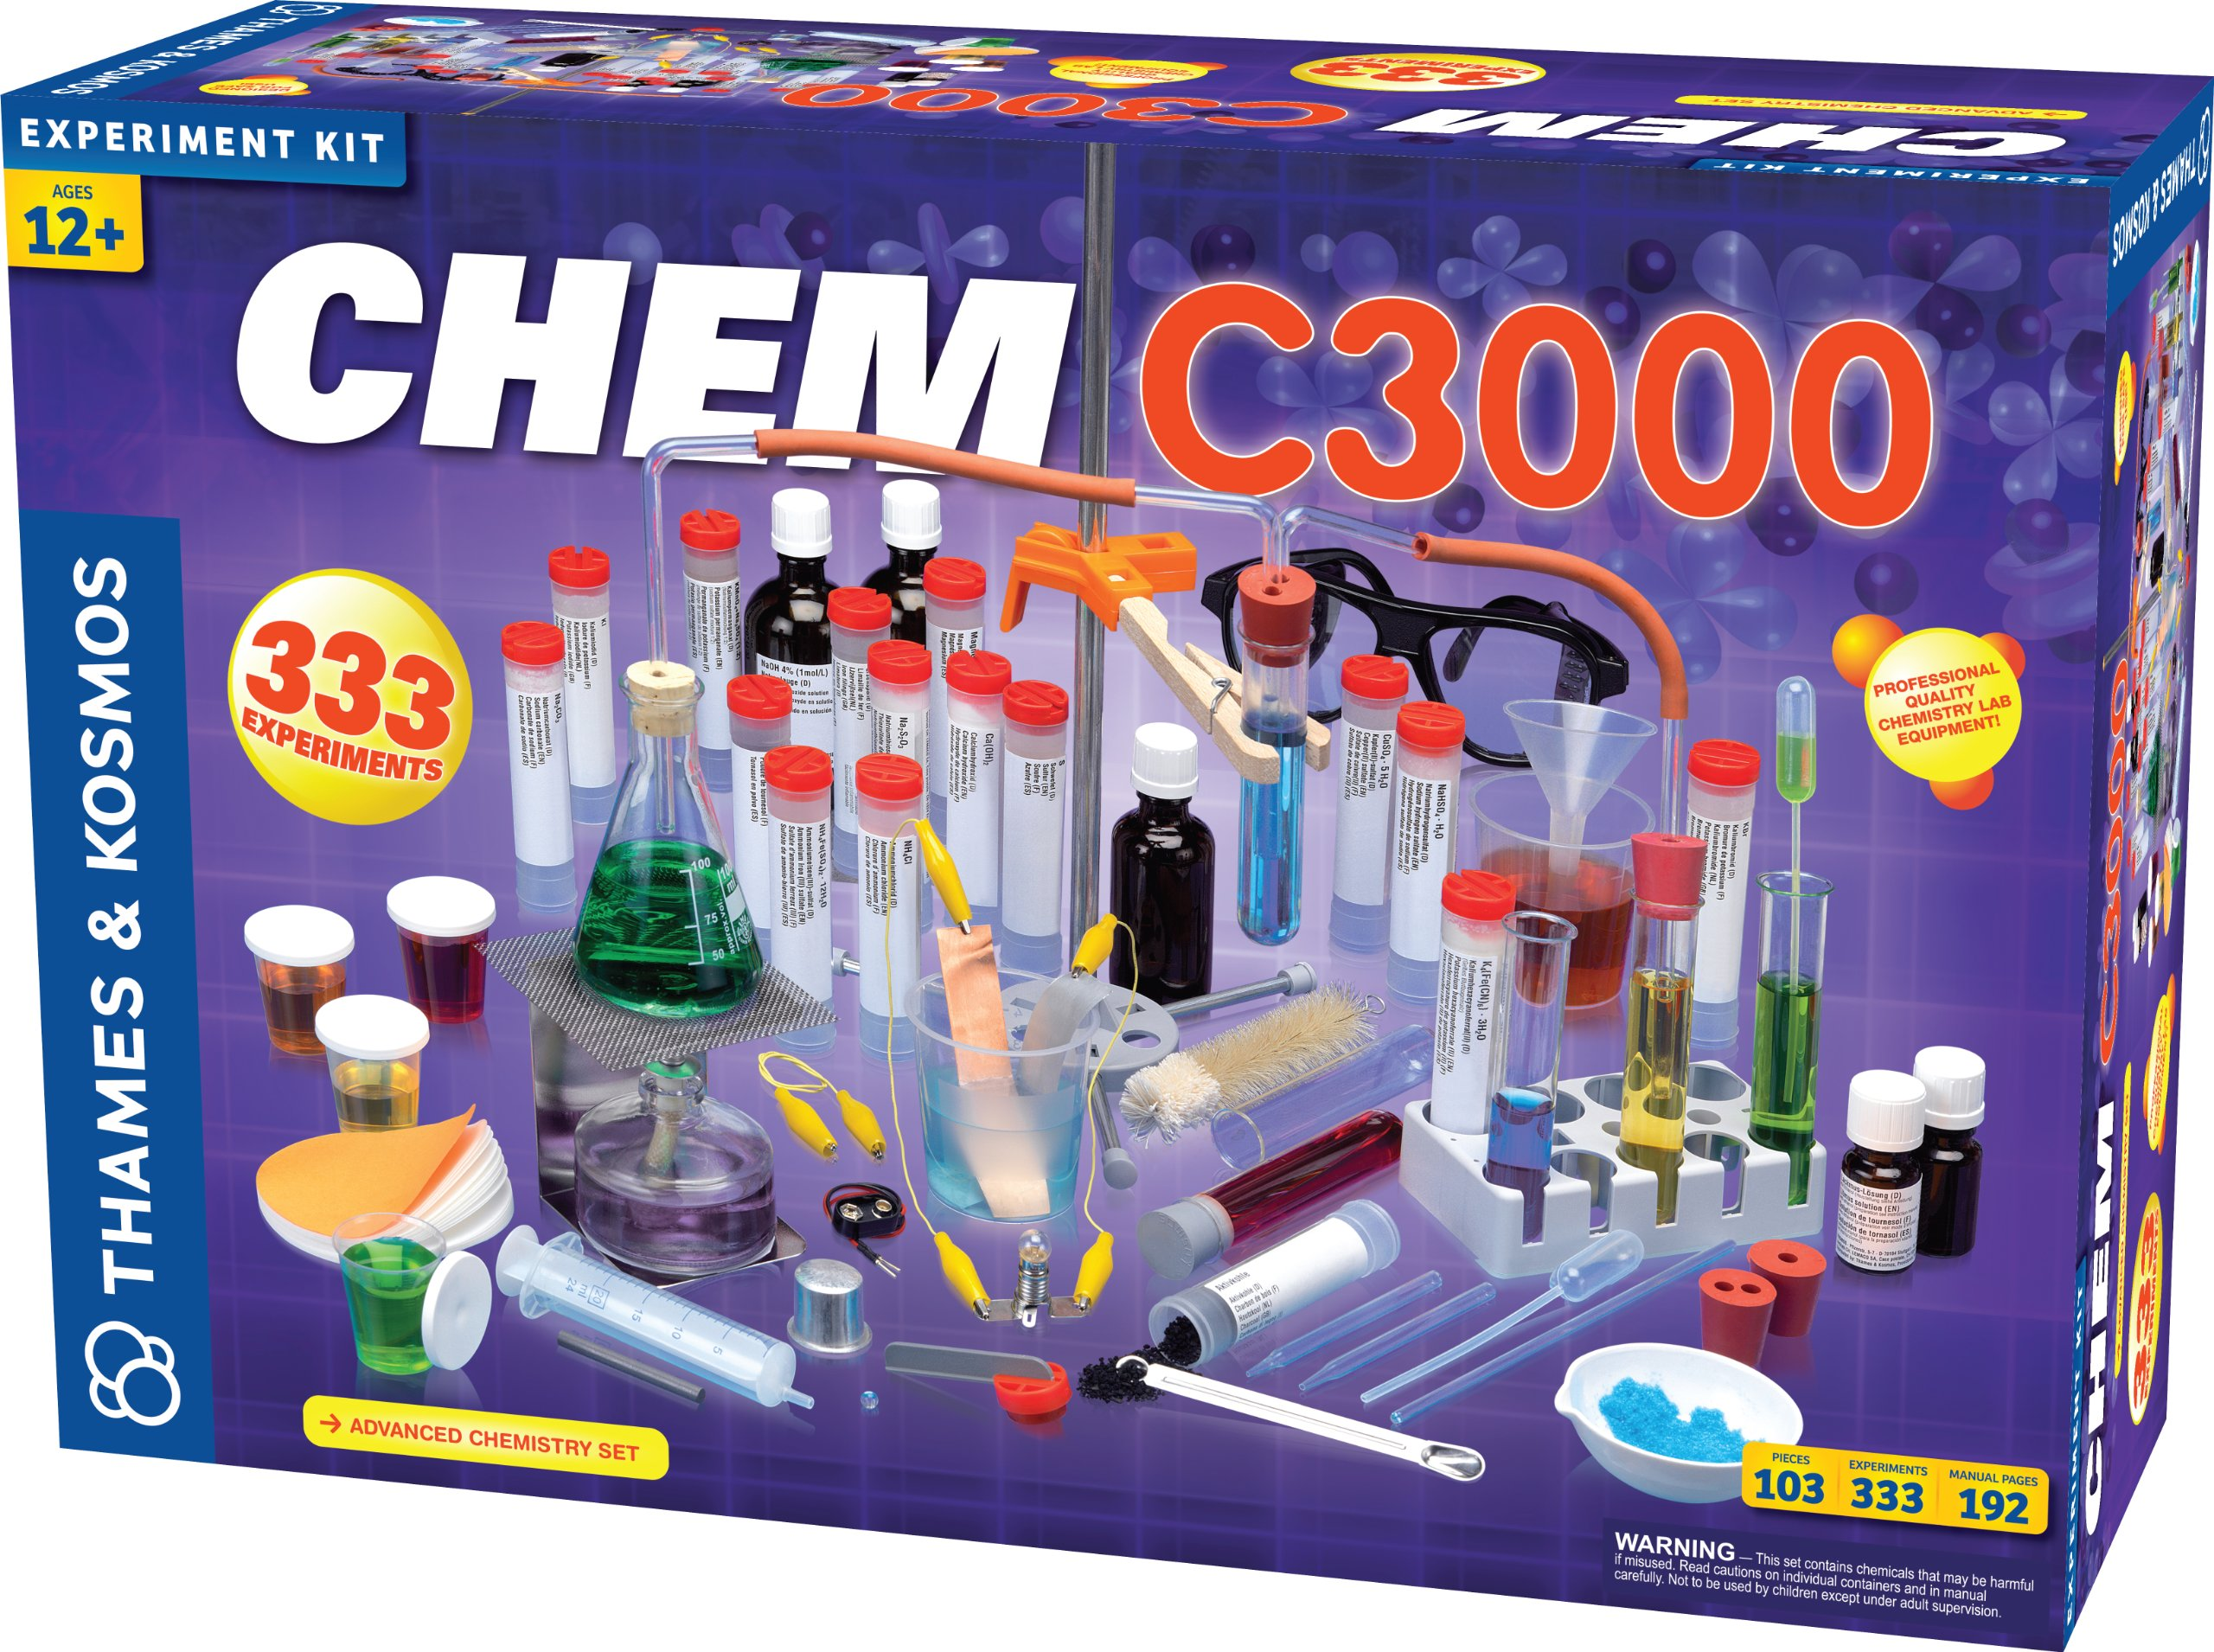 Thames & Kosmos Chem C3000 (V 2.0) Chemistry Set with 333 Experiments & 192 Page Lab Manual, Student Laboratory Quality Instruments & Chemicals